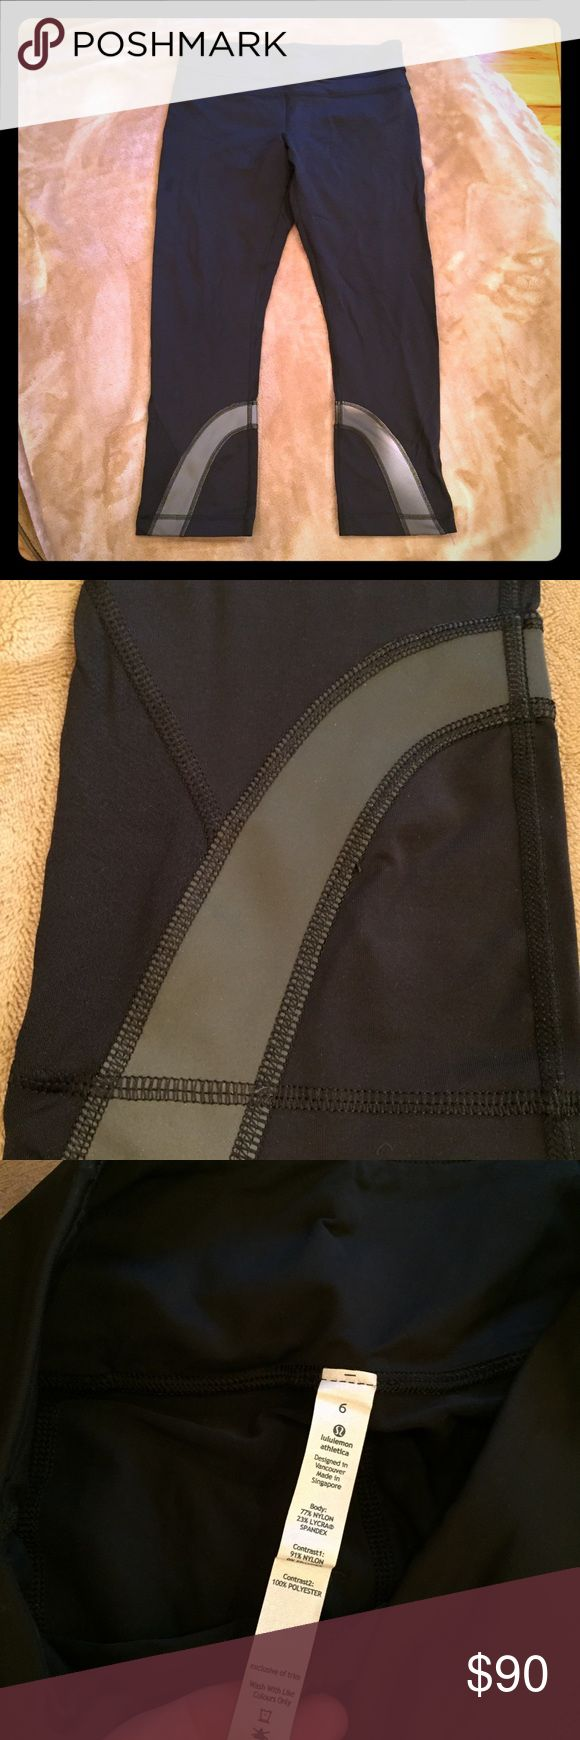 Lululemon reflective run inspire crop never worn 6 Never worn (sorry for the crotch shot but showing no pilling) has tag  cool-to-the-touch Luxtreme® is sweat-wicking and four-way stretch added LYCRA® fibre for great shape retention stash fuel and essentials in the secure back zipper pocket and two waistband pouches Mesh side leg pockets for all of your extras hidden reflectivity helps you stay visible when you're out before (or after) the sun cinch the continuous drawcord for a custom fit…